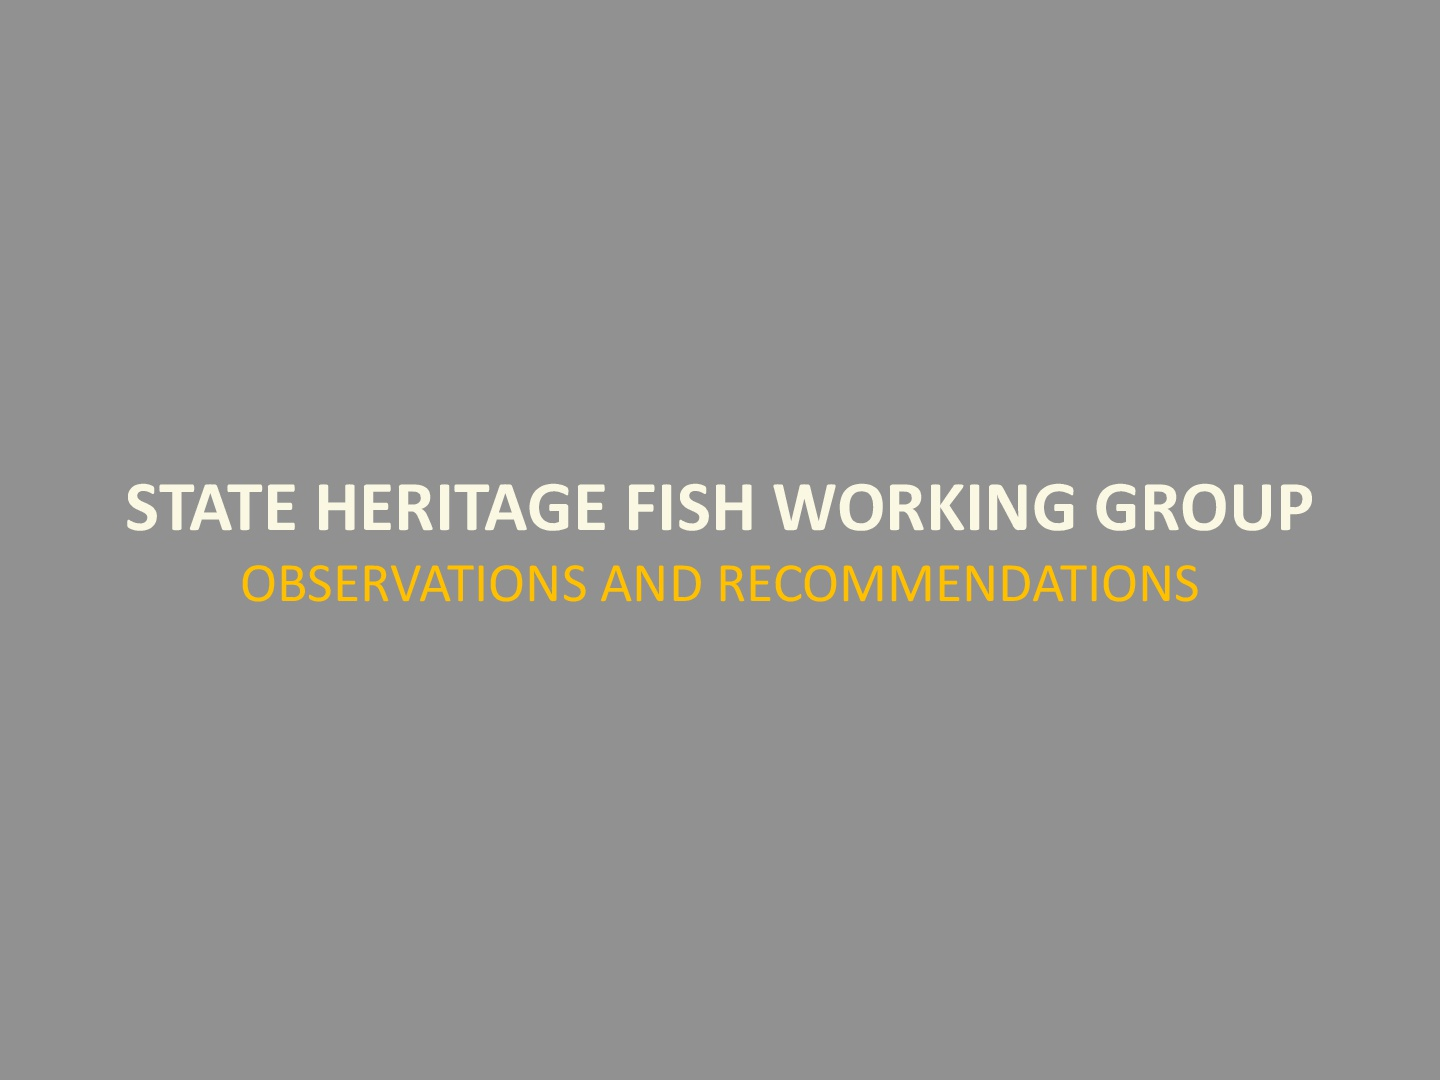 Heritage-Fish-Working-Group-Presentation-002.jpg